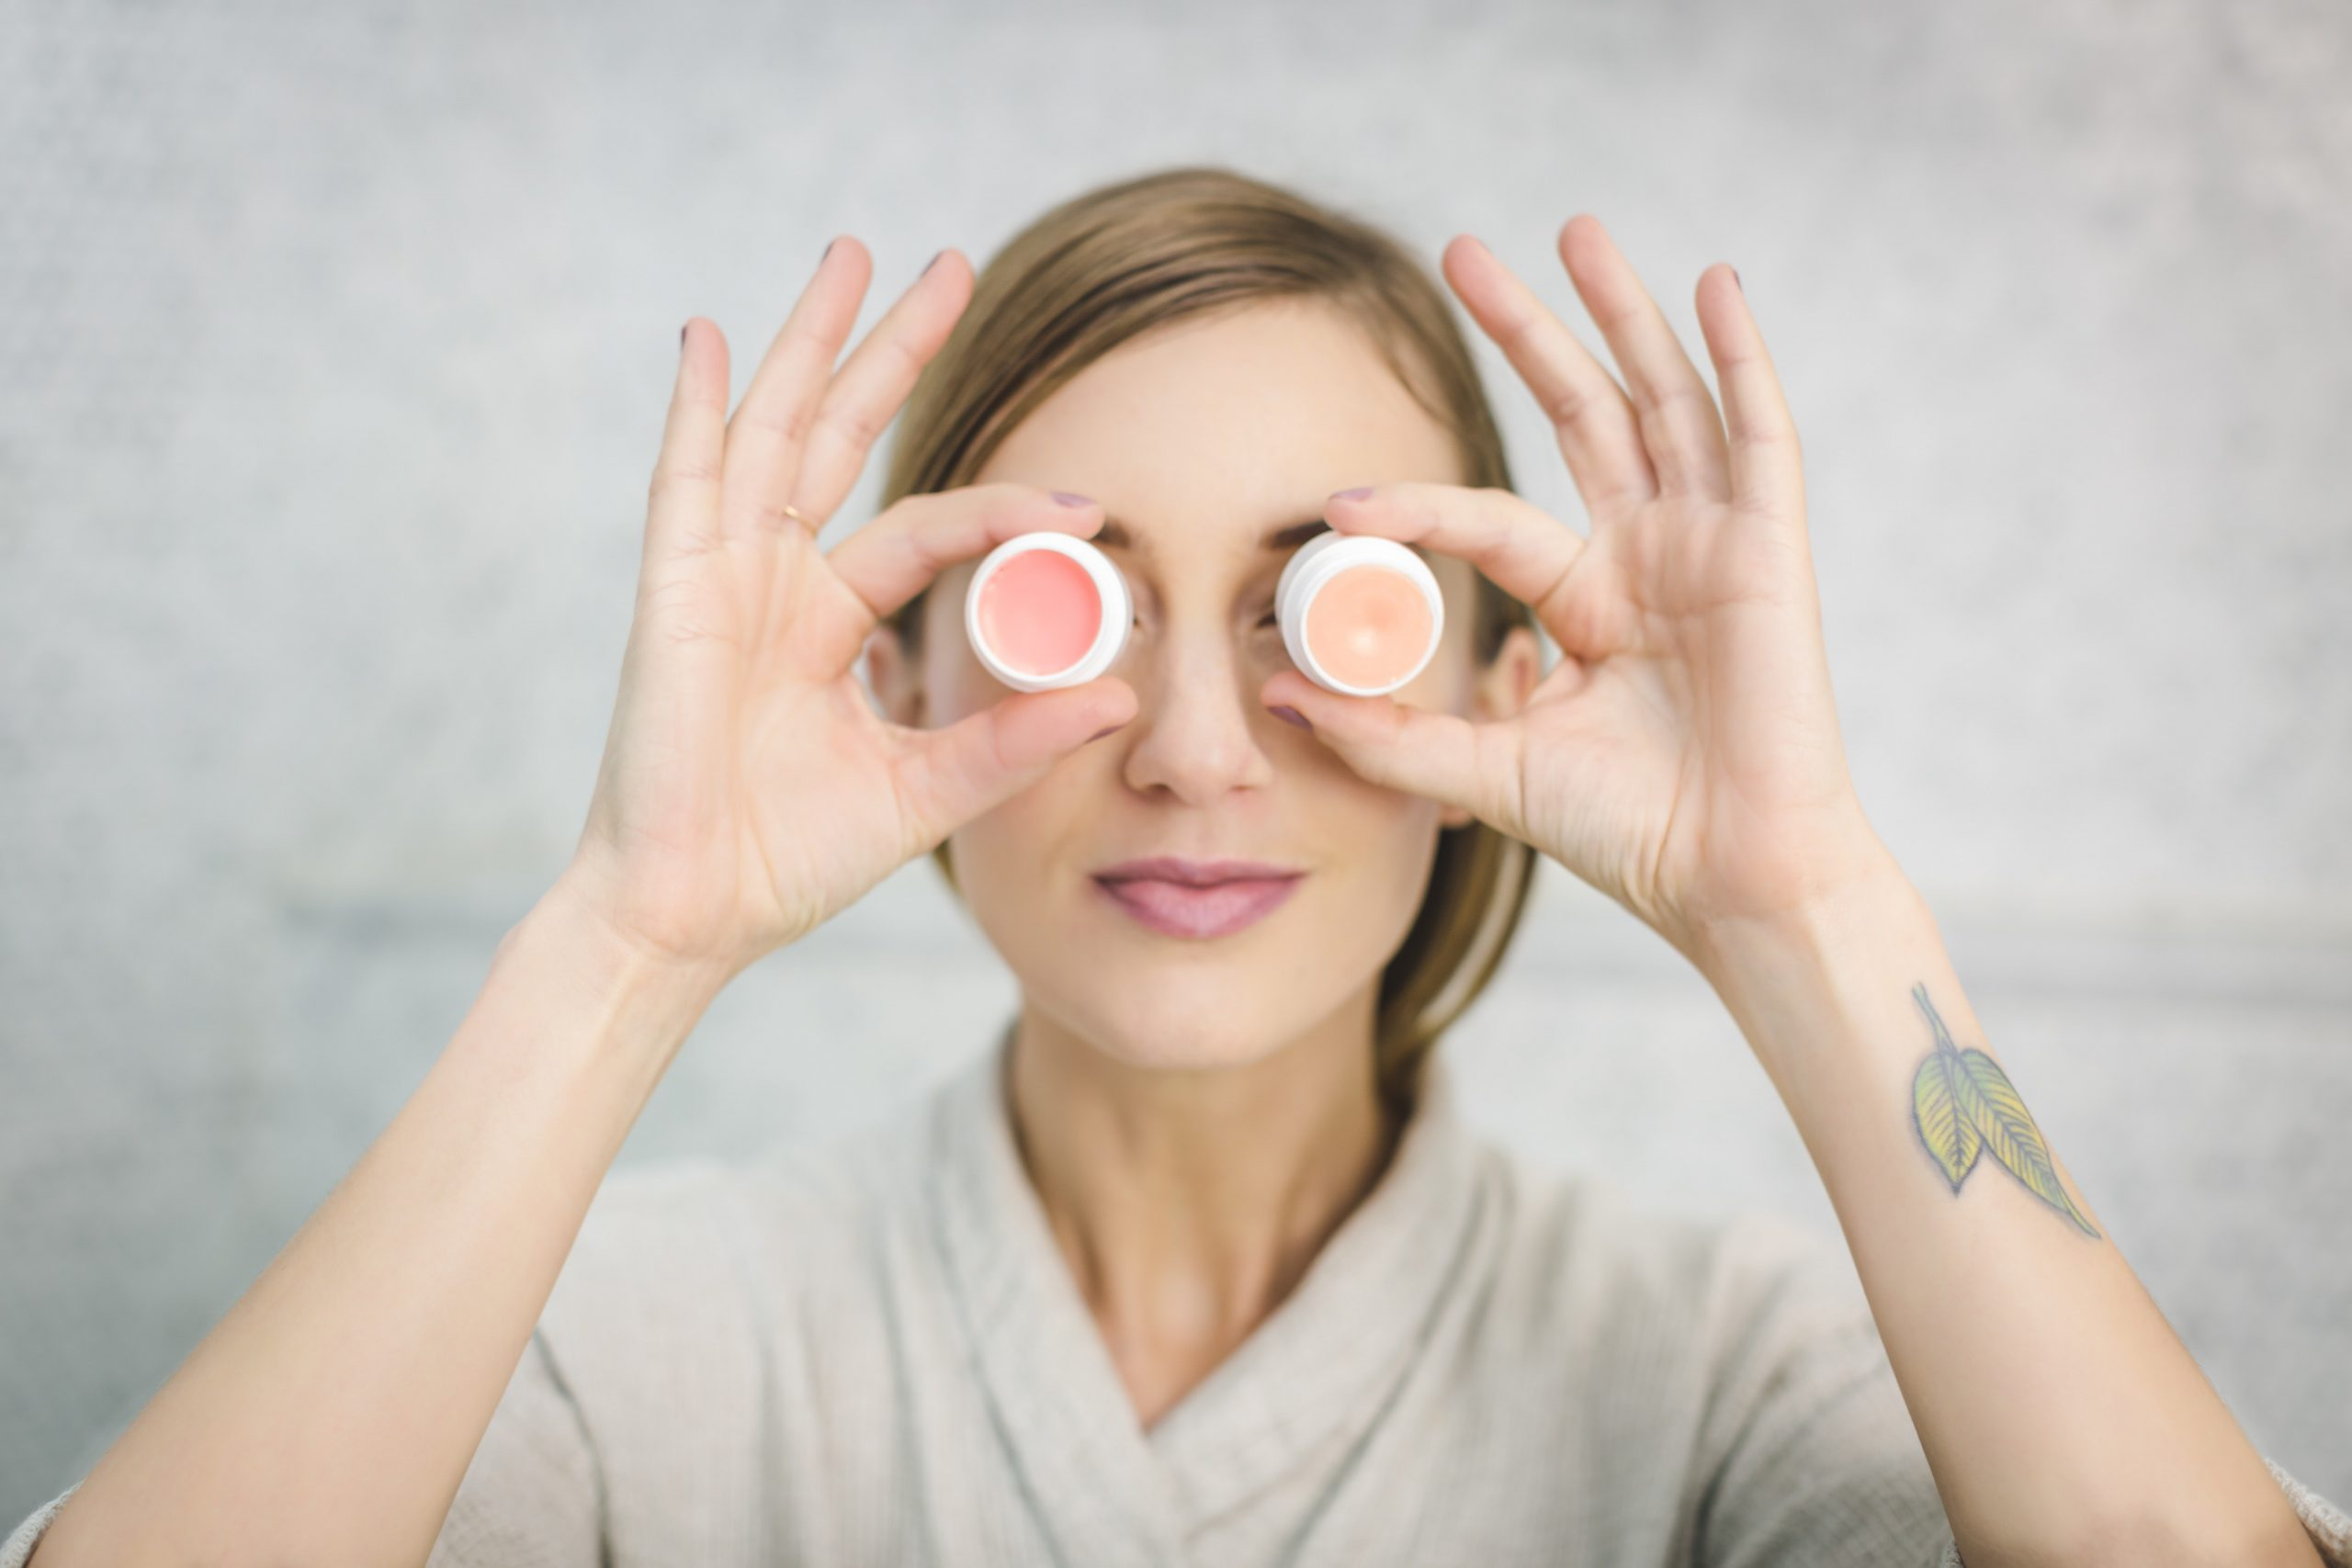 Don't Skip These 3 Simple Steps in Applying Eye Cream article image by Mayerlingskincare.com